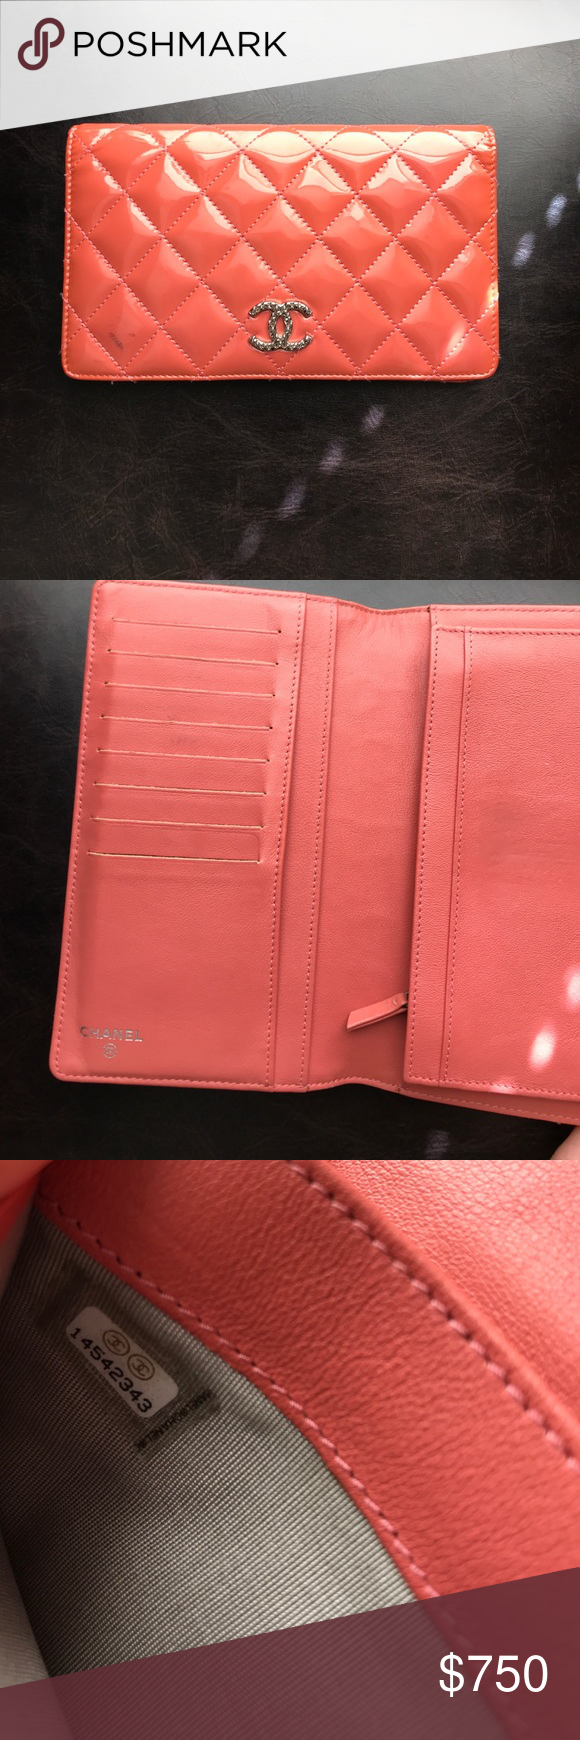 Authentic Chanel Pink Patent Leather Wallet  Chanel Pink Chanel